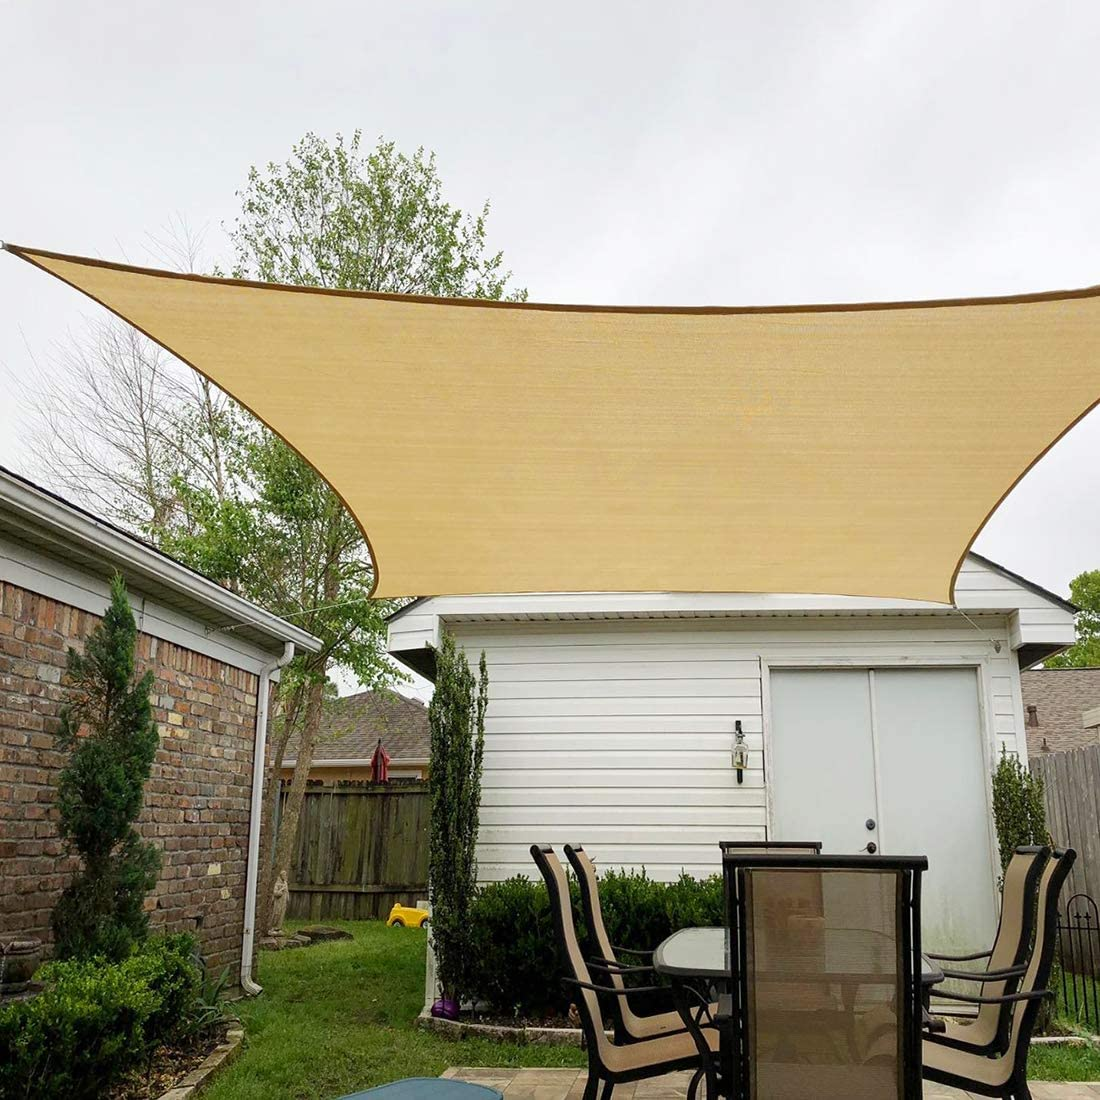 Peaktop Outdoor 20 x20 Sand Sun Shade Sail 185 GSM Square 98 UV Block Canopy Water Air Permeable Awning Patio Garden Porch, with Hardware Kits, 5 Years Warranty